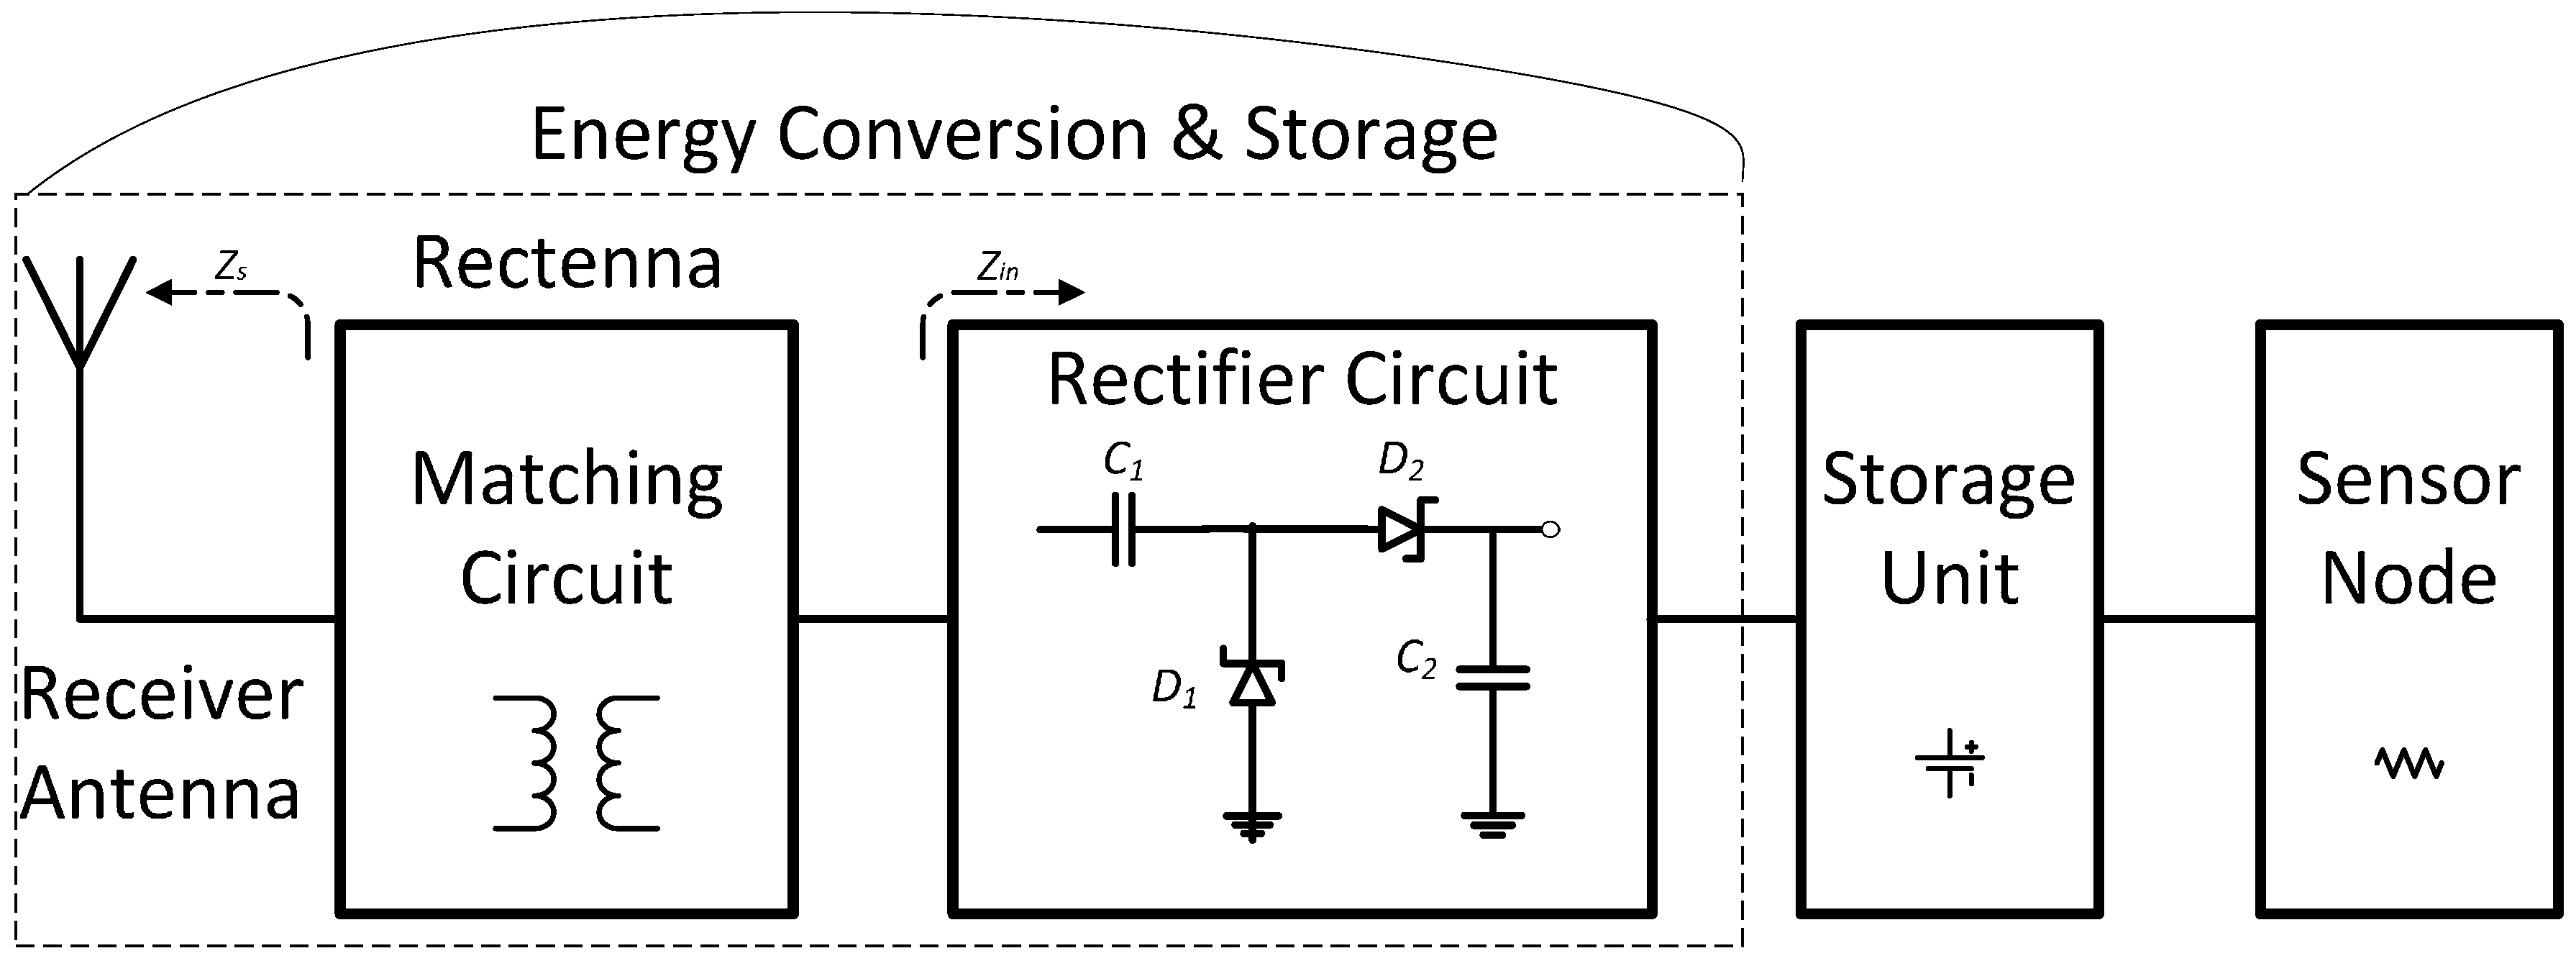 Telsiz Guc Kaynagi Lm Mj further Image moreover Uc V A Smps in addition Ir Smps Charge Dc Dc Converter V V Conventional Switching Circuit Ir likewise Str W Tcd En. on dc voltage converter circuit